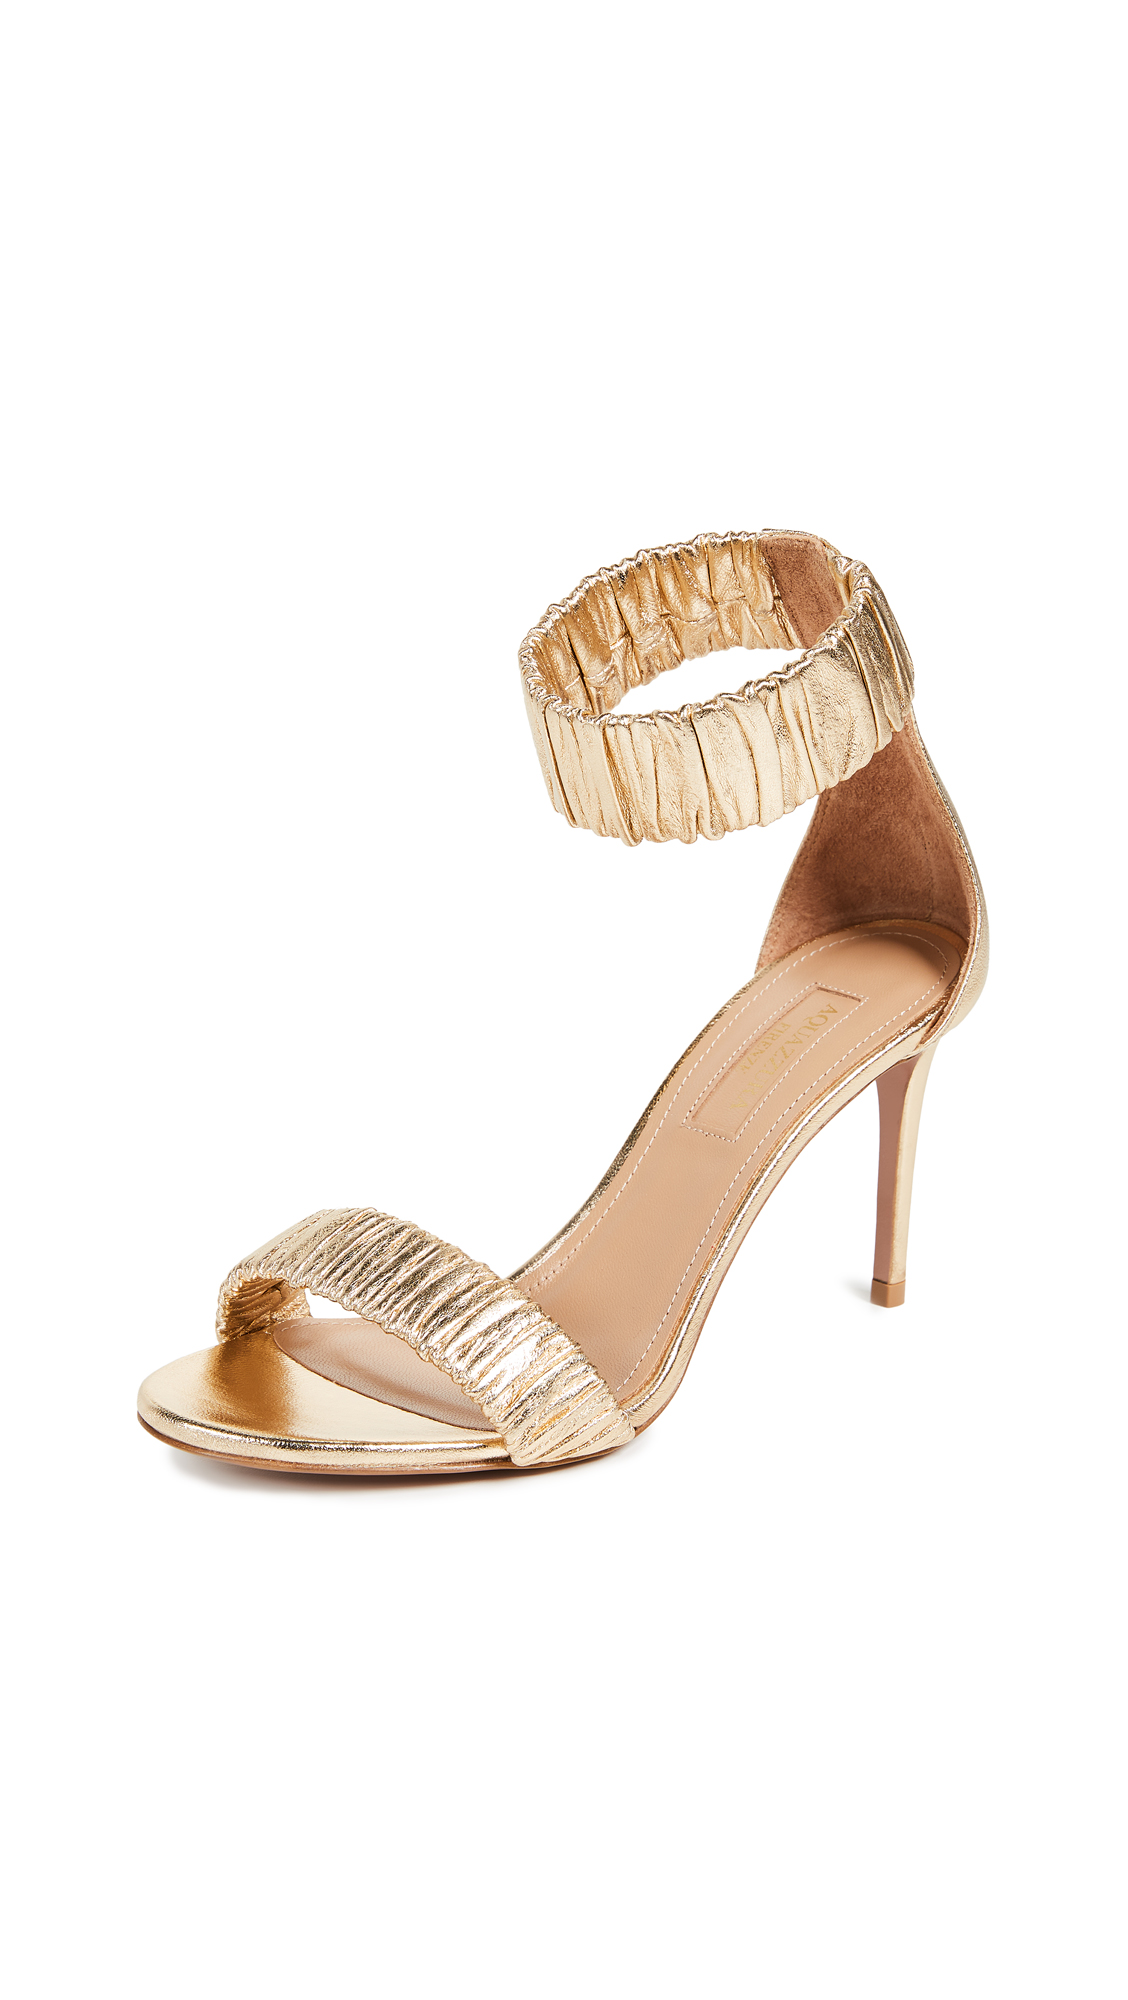 Aquazzura Liberty 85mm Sandals - Soft Gold